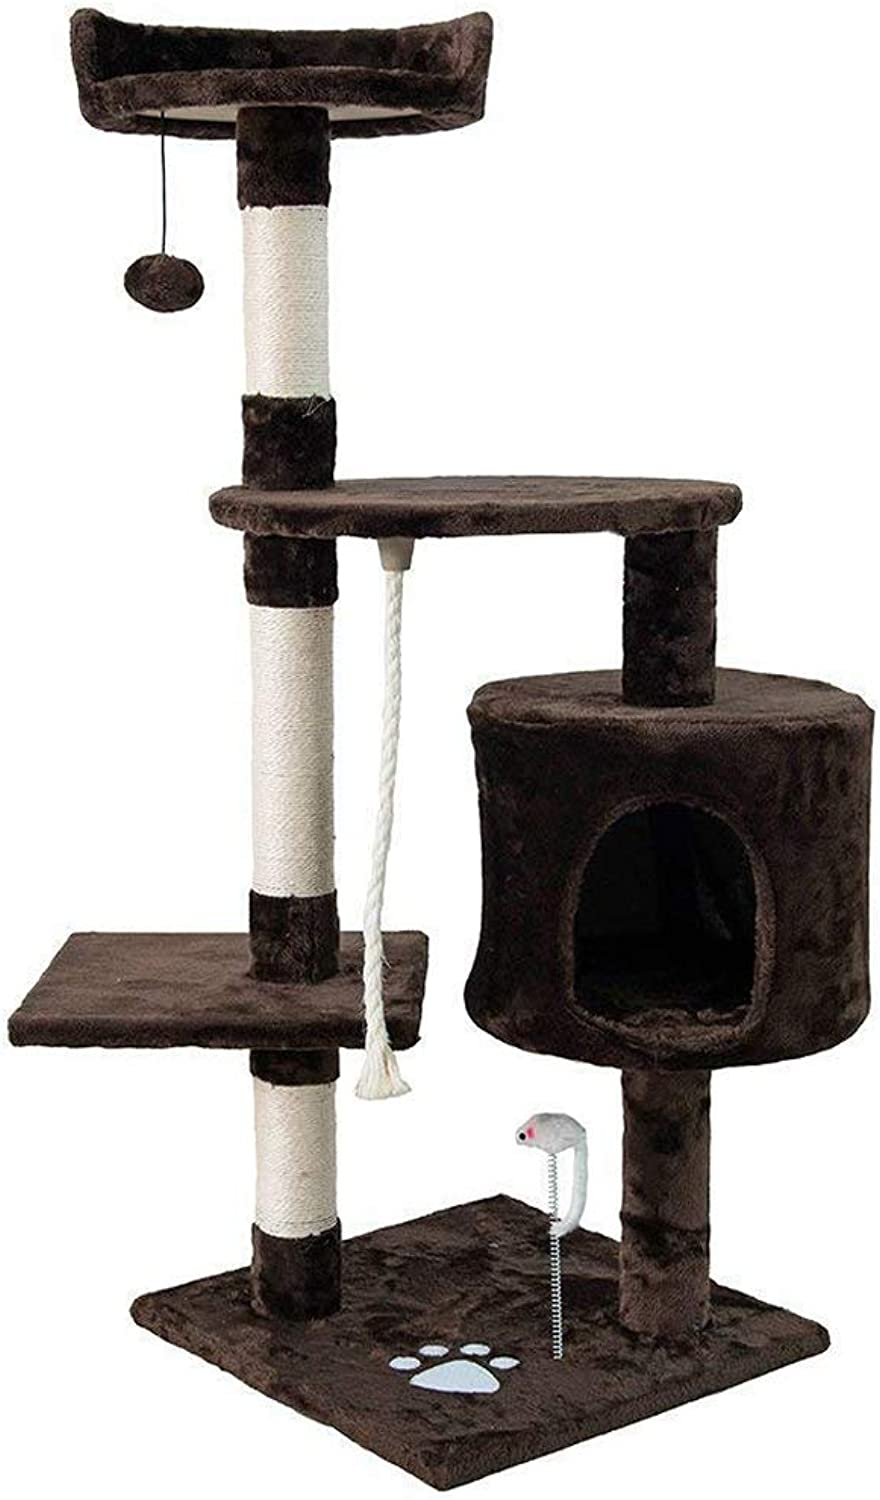 Dipet Cat Tree Furniture,Cat House, Kittens Climbing Tower Size 45 (H)